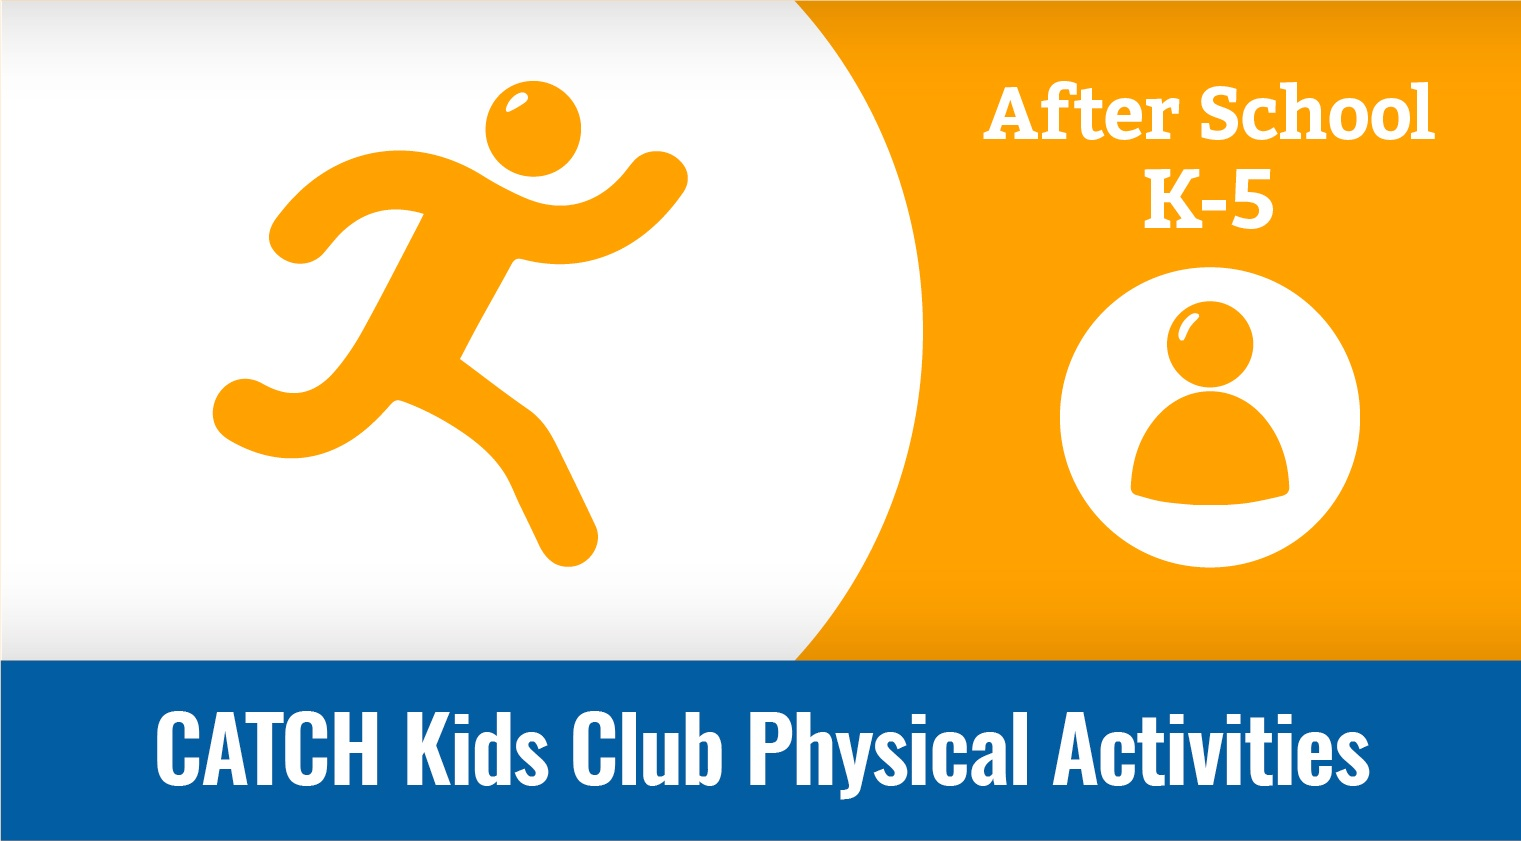 CATCH Kids Club (K-5) Activity Pack